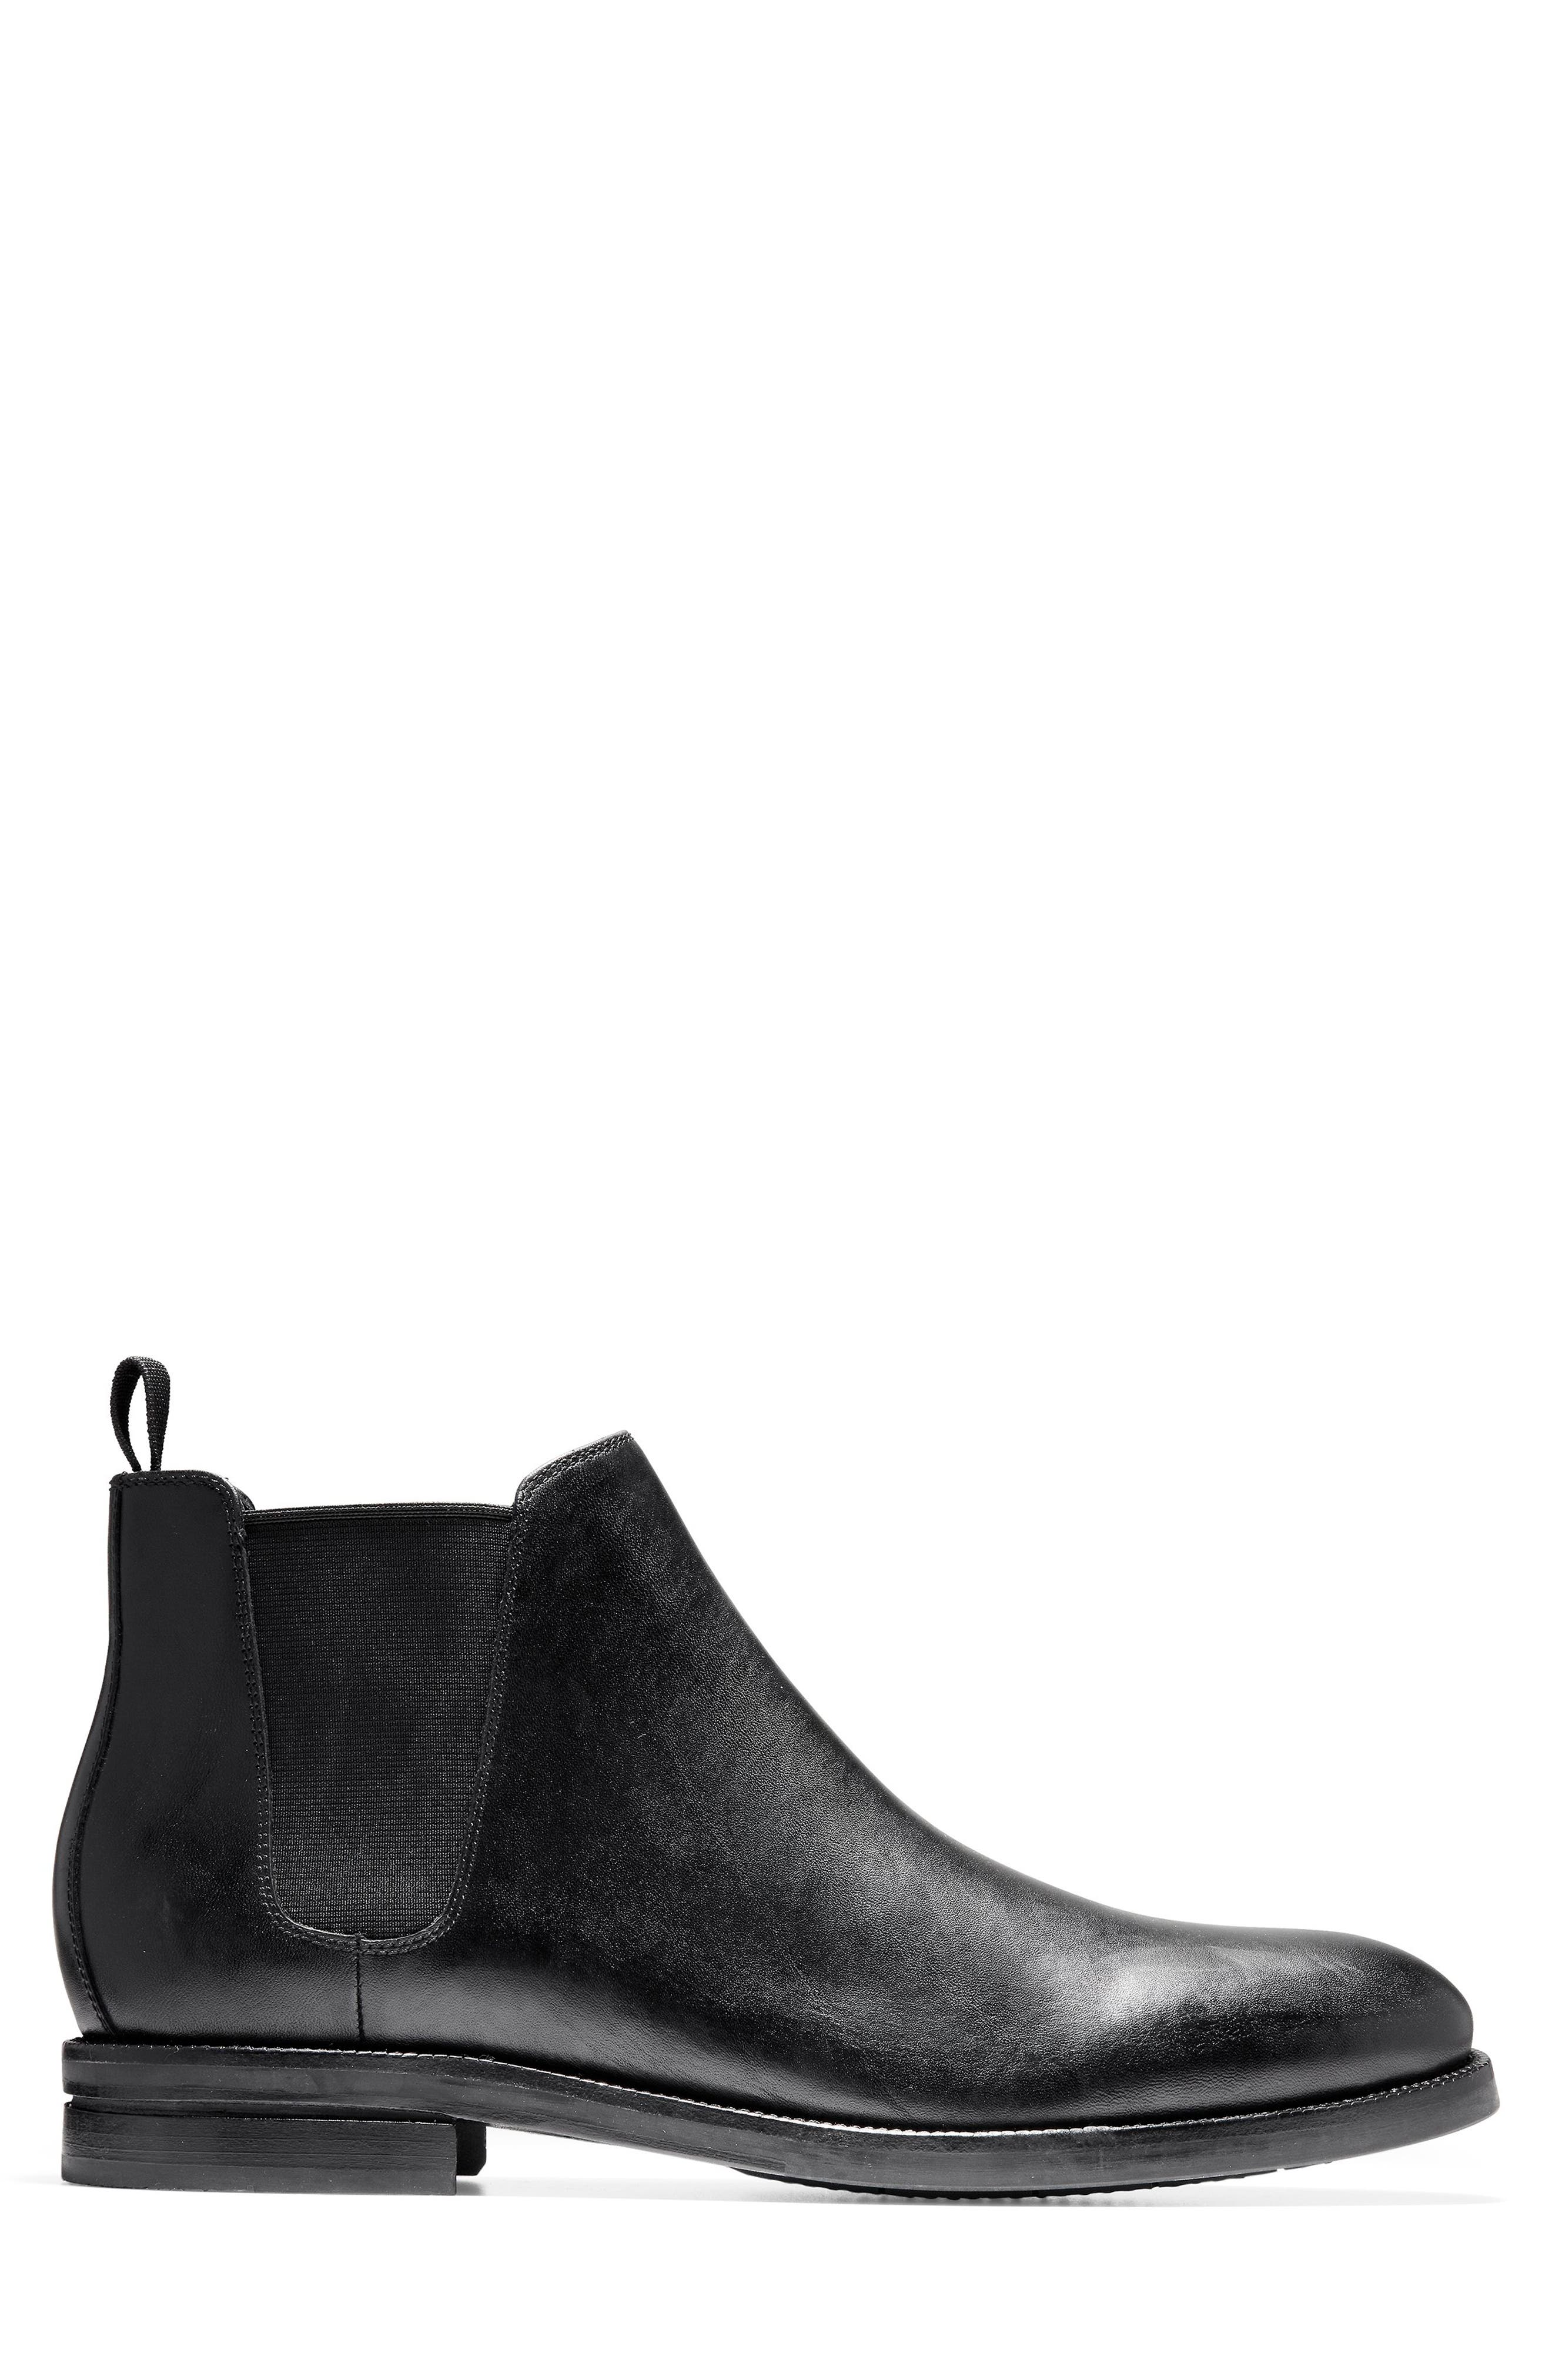 Wakefield Grand Chelsea Boot,                             Alternate thumbnail 2, color,                             BLACK LEATHER